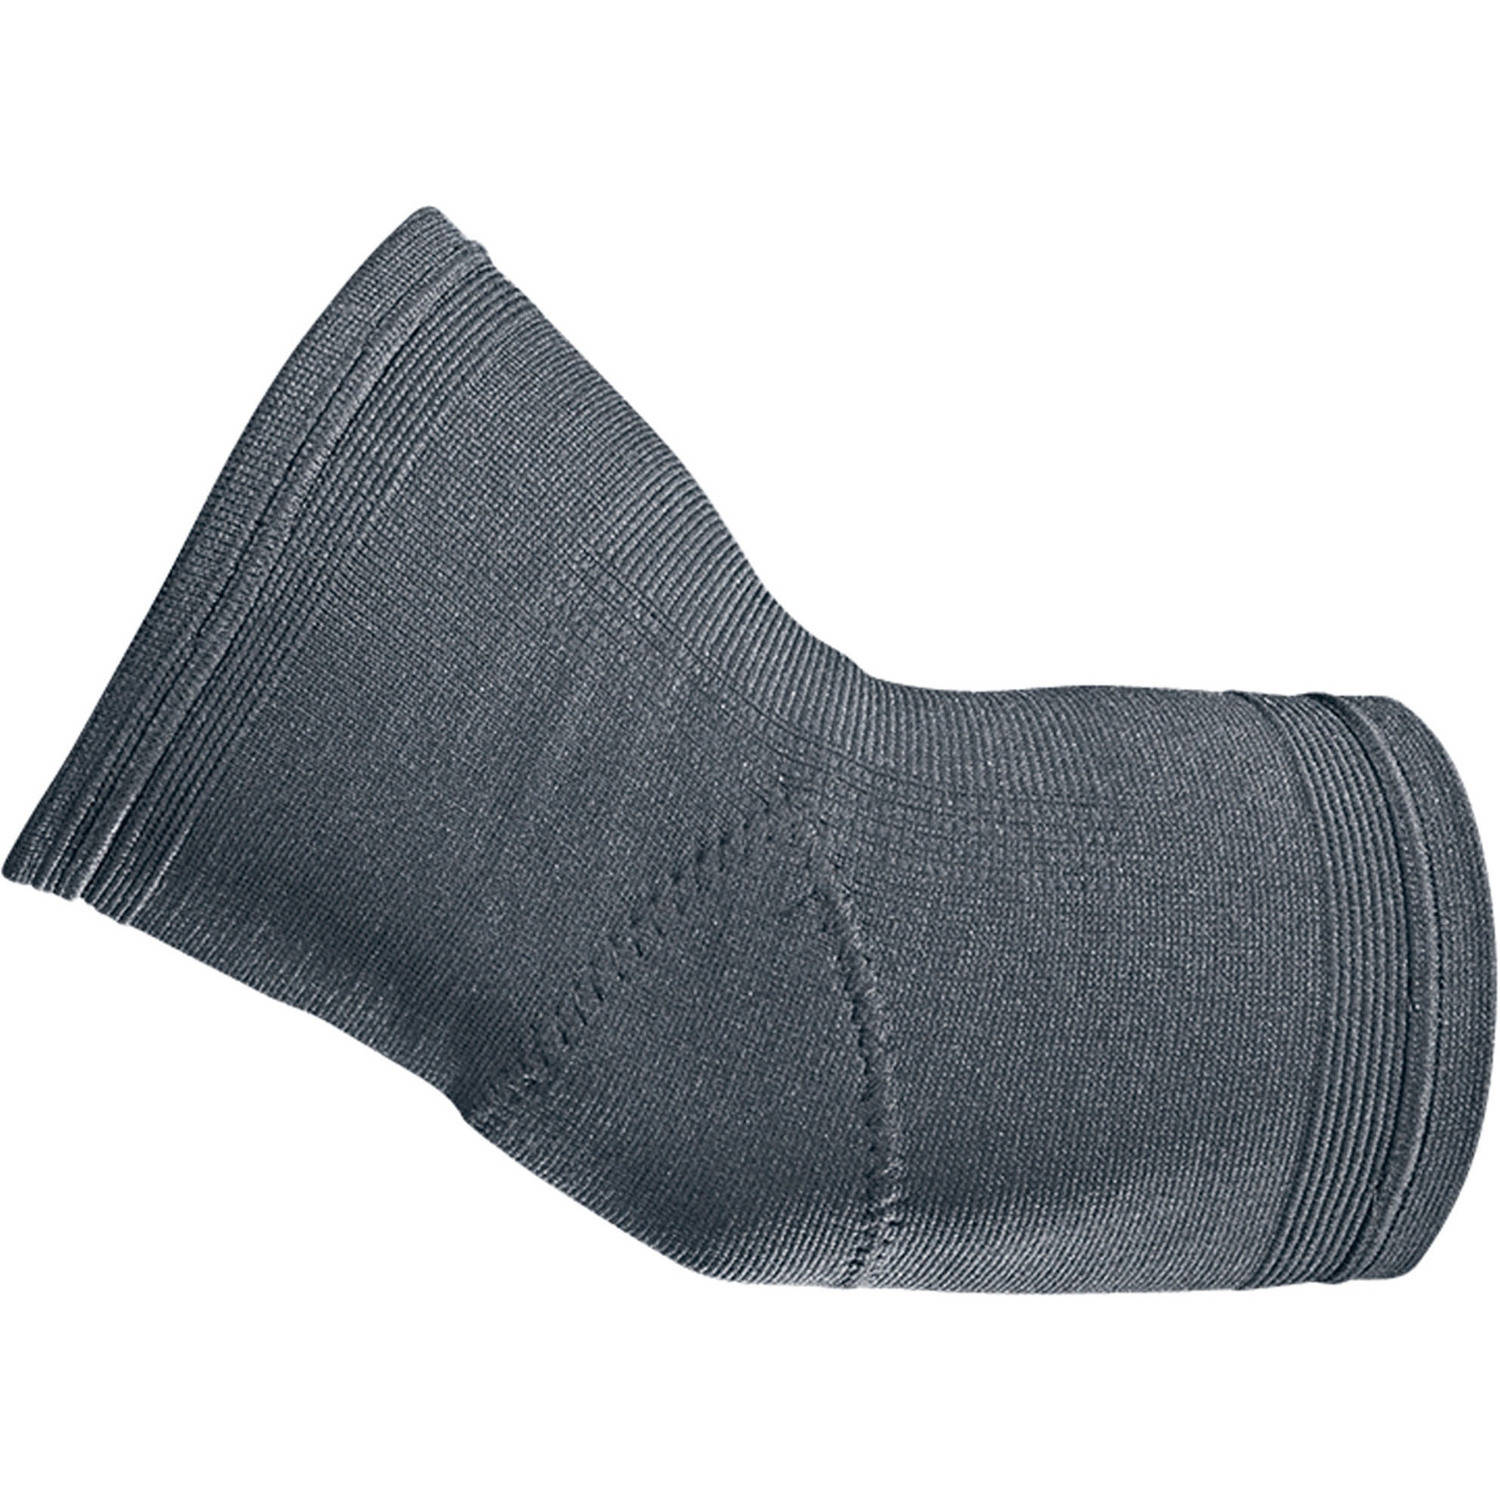 ACE Compression Elbow Support, LG/XL, 904002